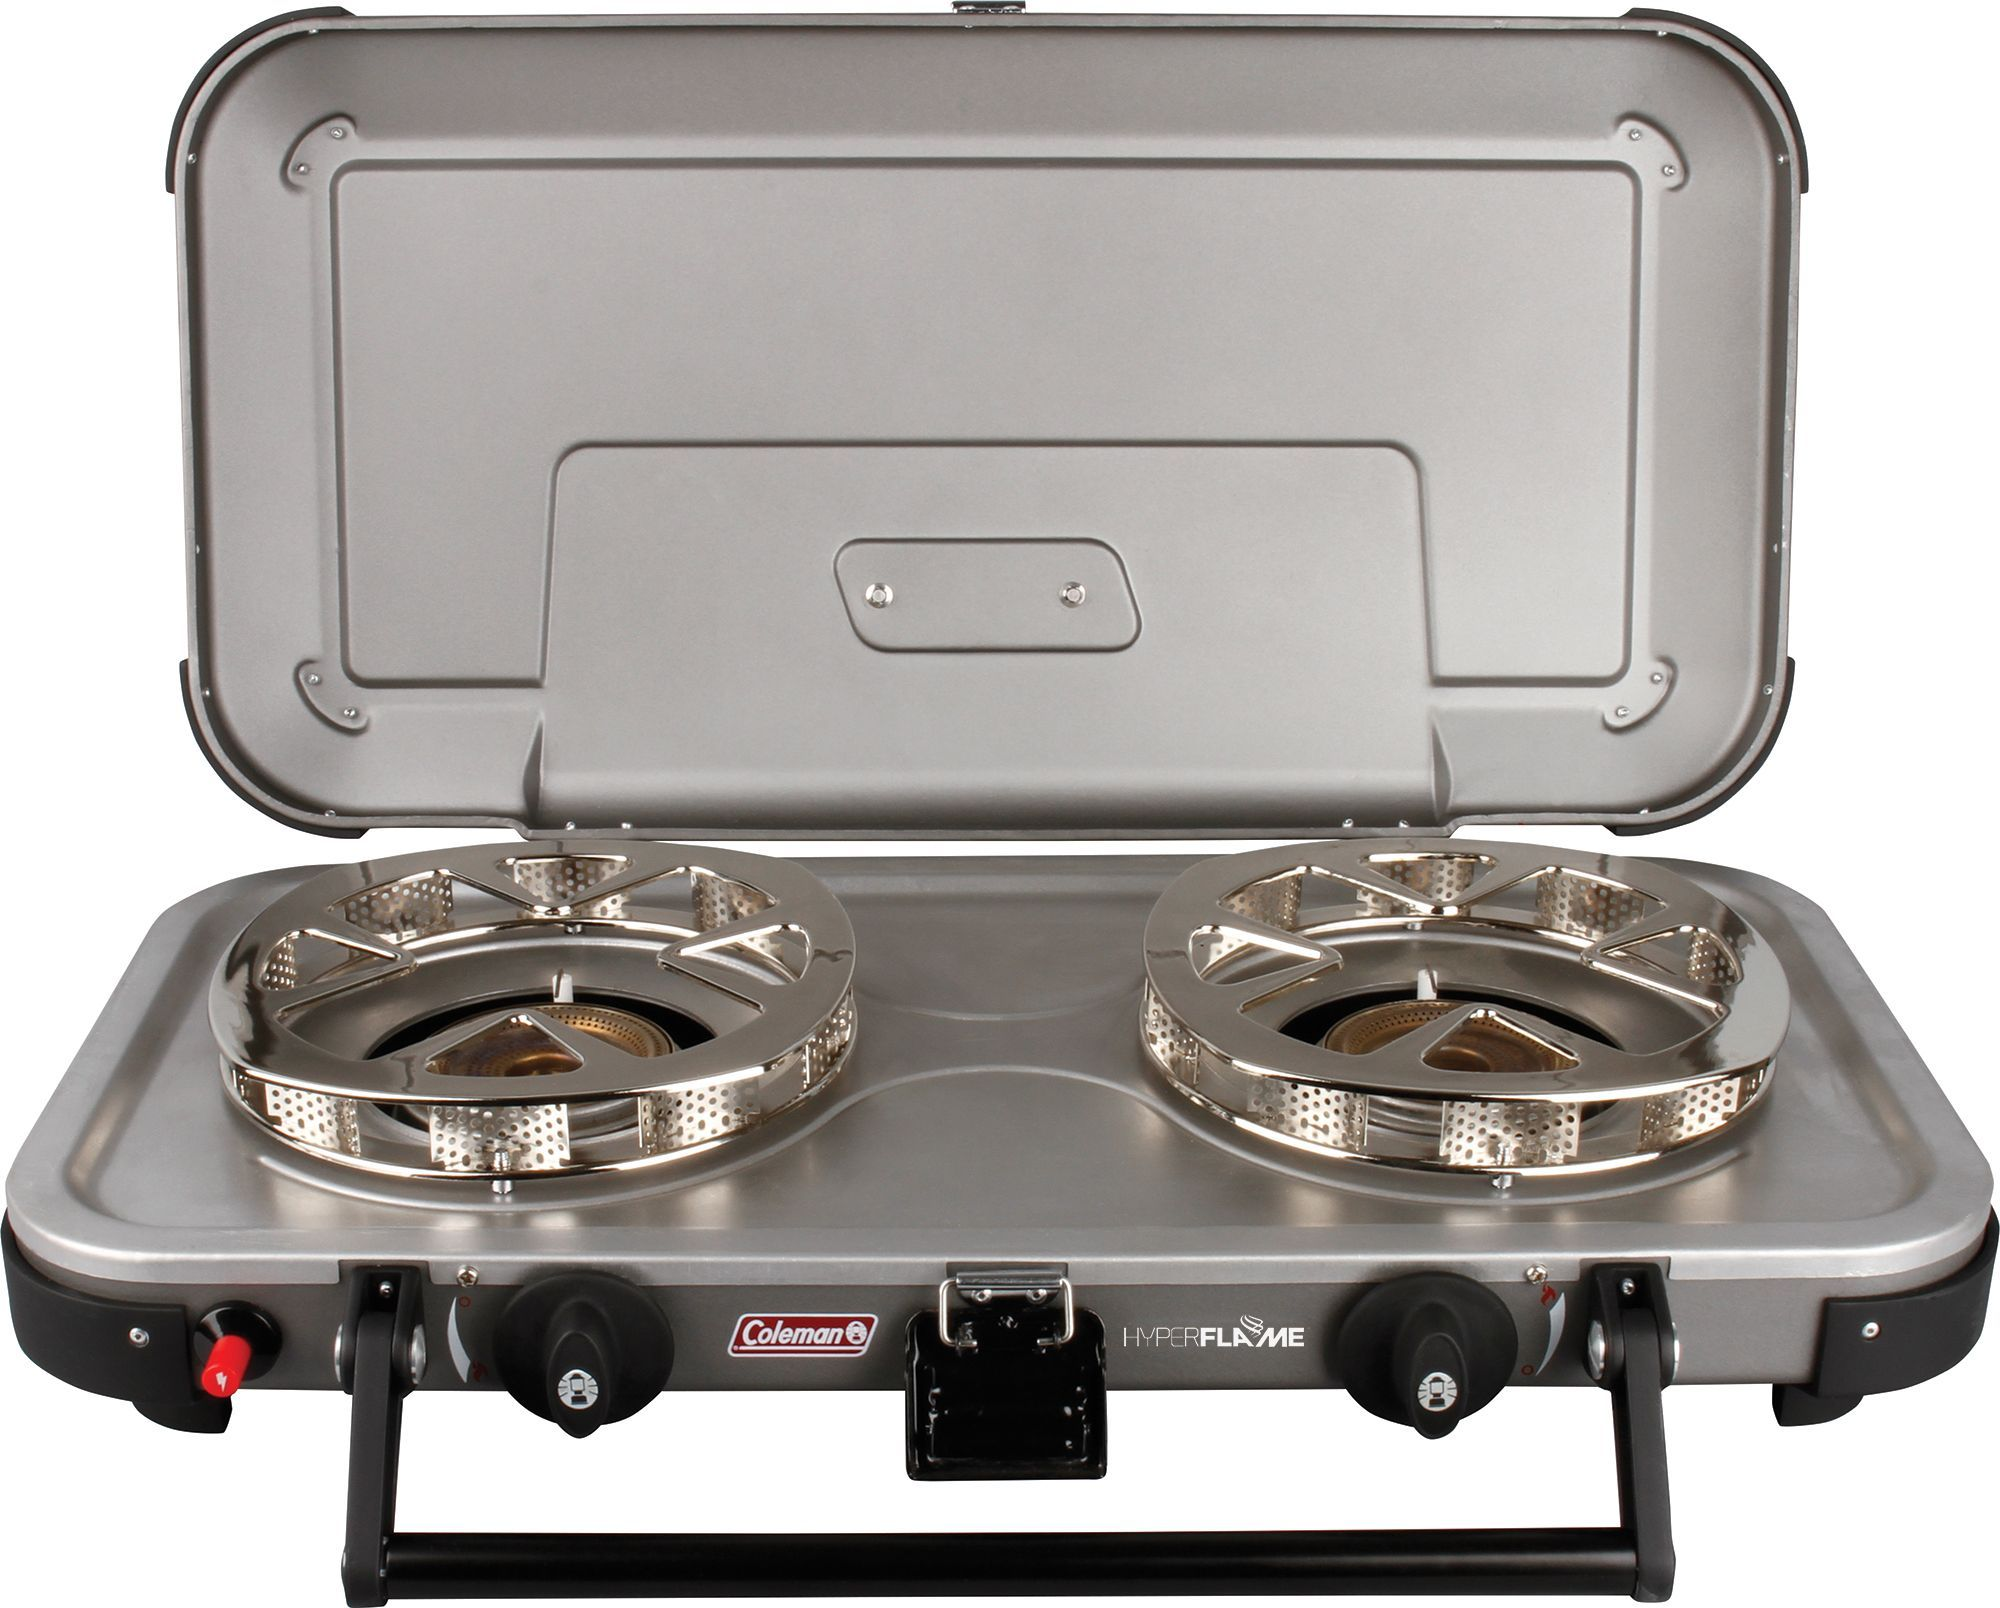 Denali Camp Stove Coleman Fyreknight 2 Burner Propane Stove Travel Pinterest